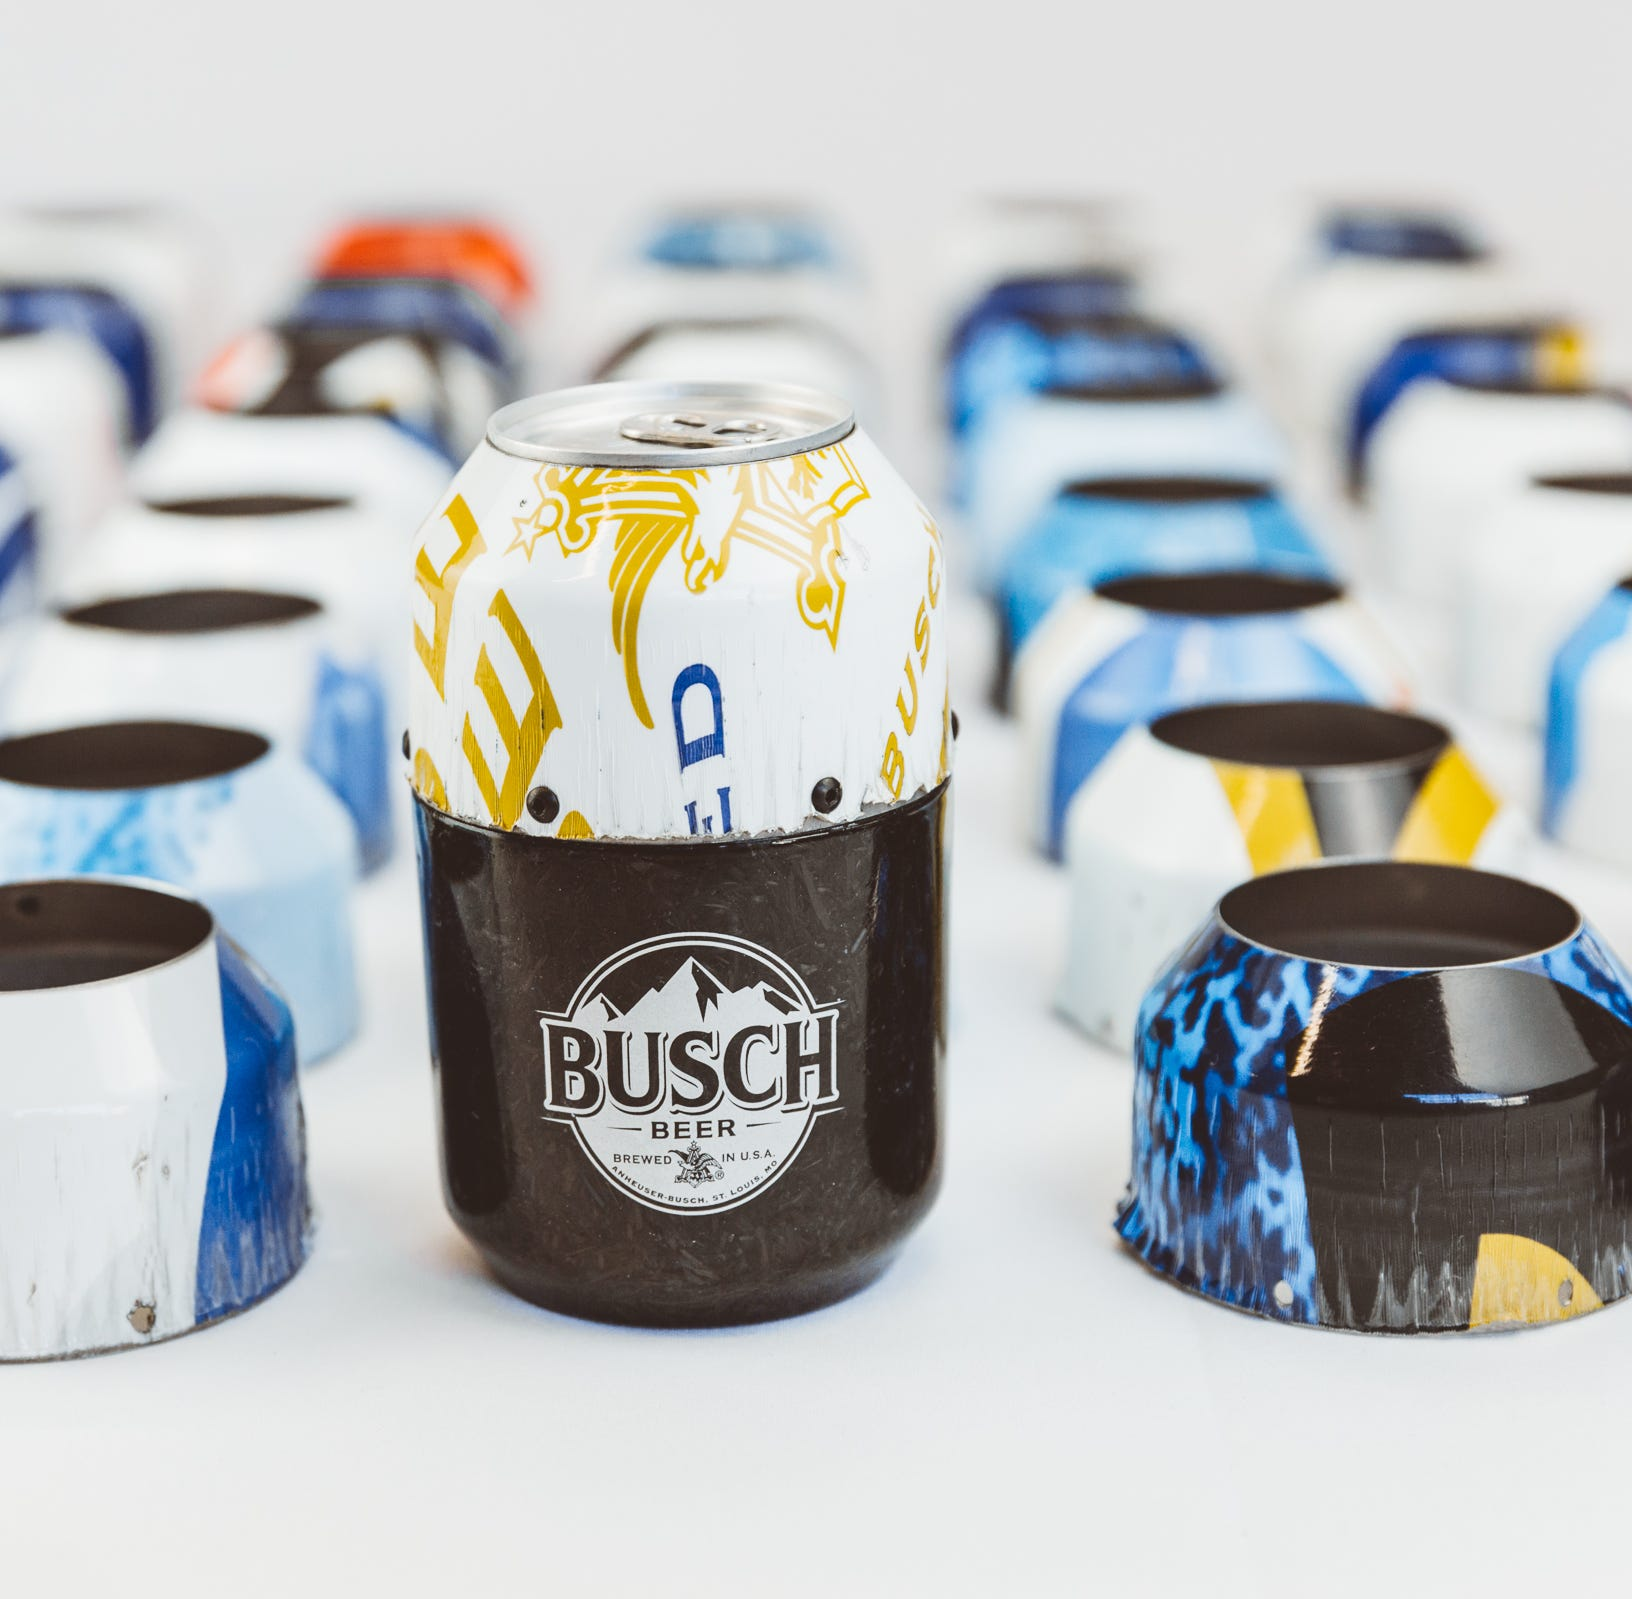 Ithaca company uses Kevin Harvick's NASCAR race car to make Busch beer cans